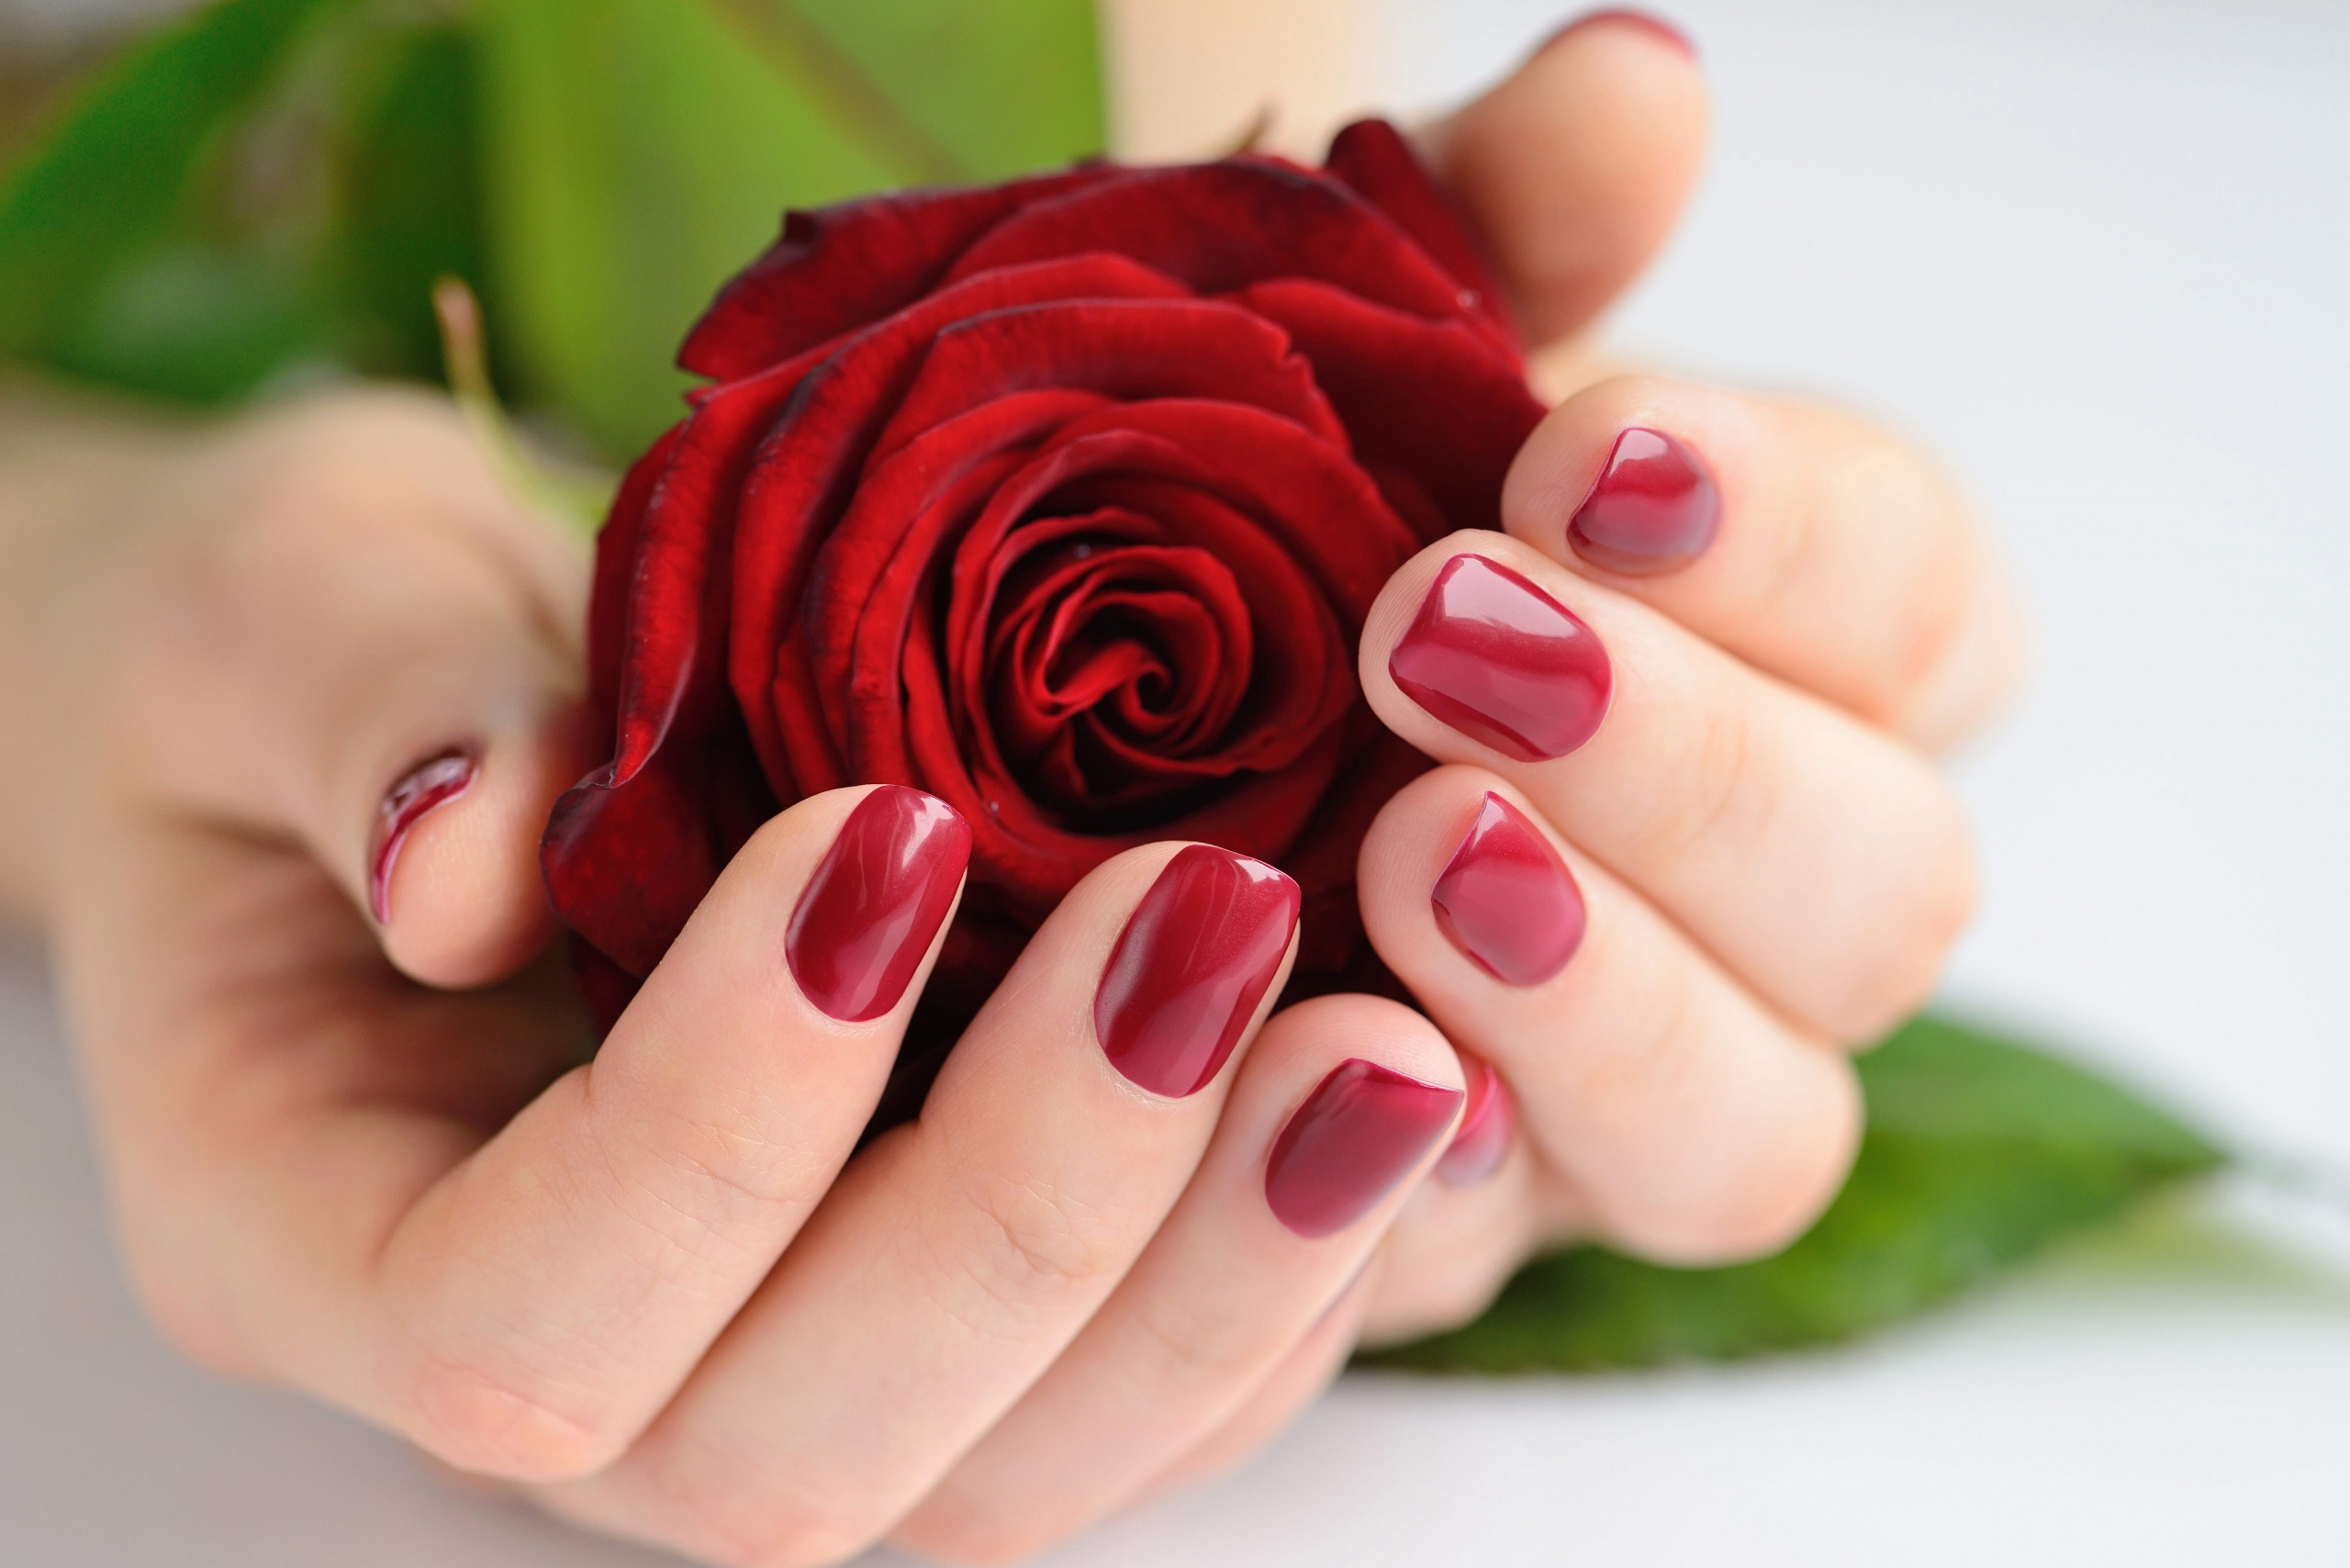 hands-of-a-woman-with-dark-red-manicure-with-red-r-PJQHB9W-1-scaled.jpg